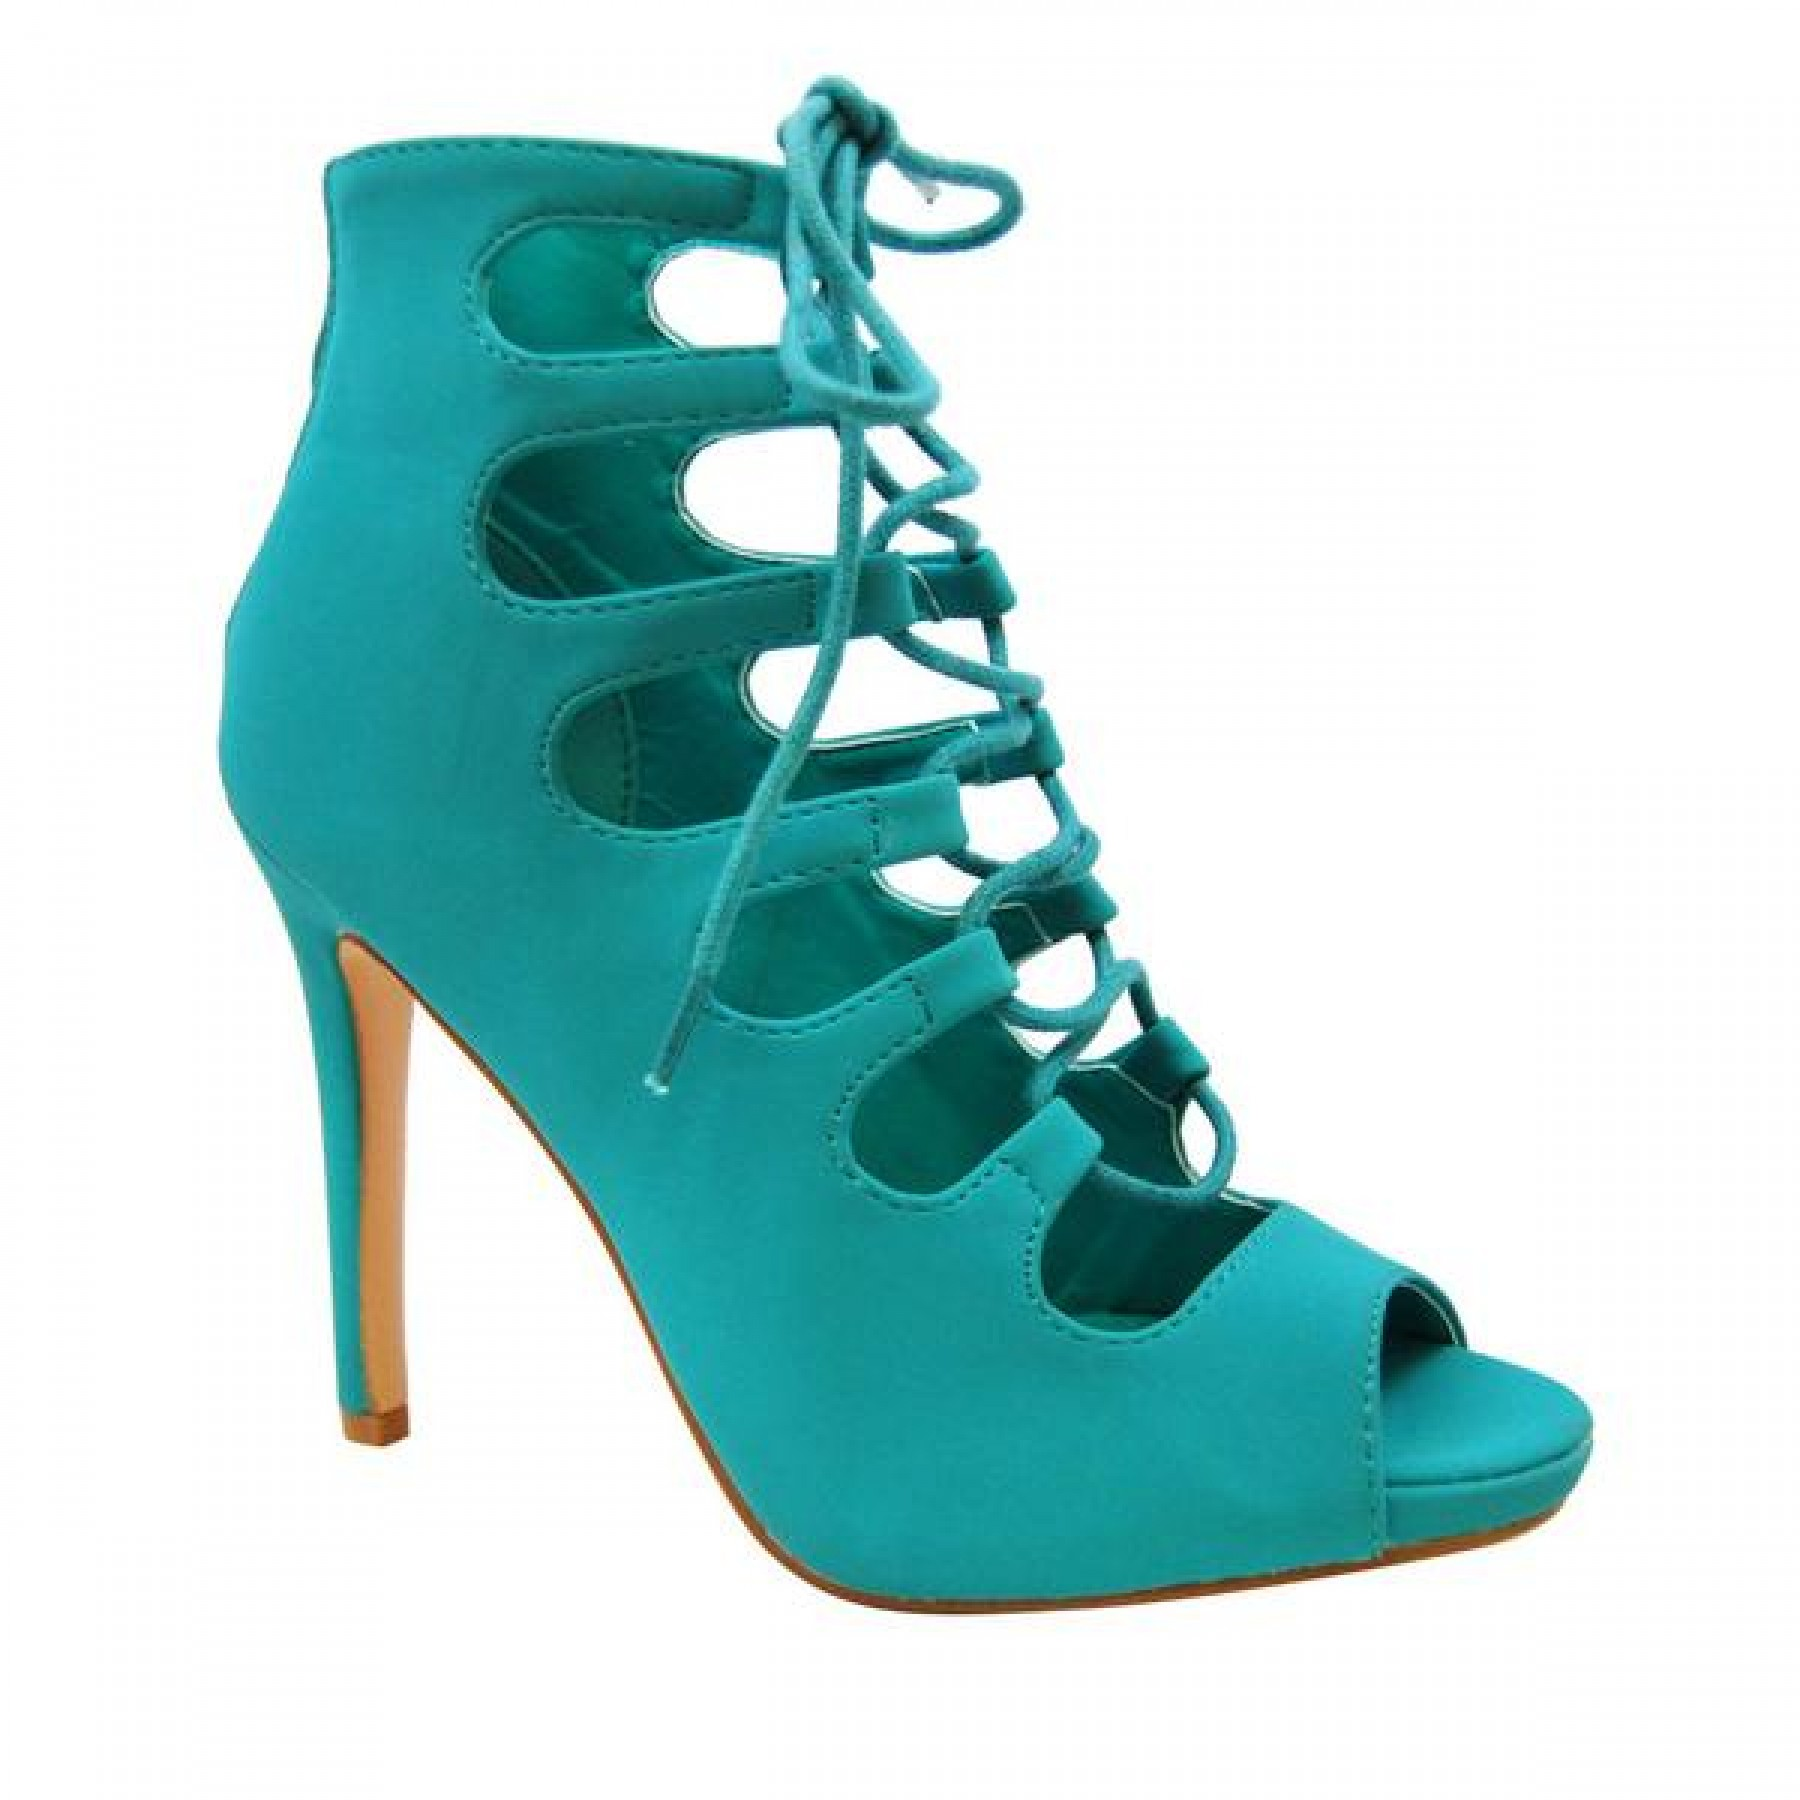 Women's Teal Manmade Wanelle 4-inch Peep Toe Heel with Lace-up Vamp